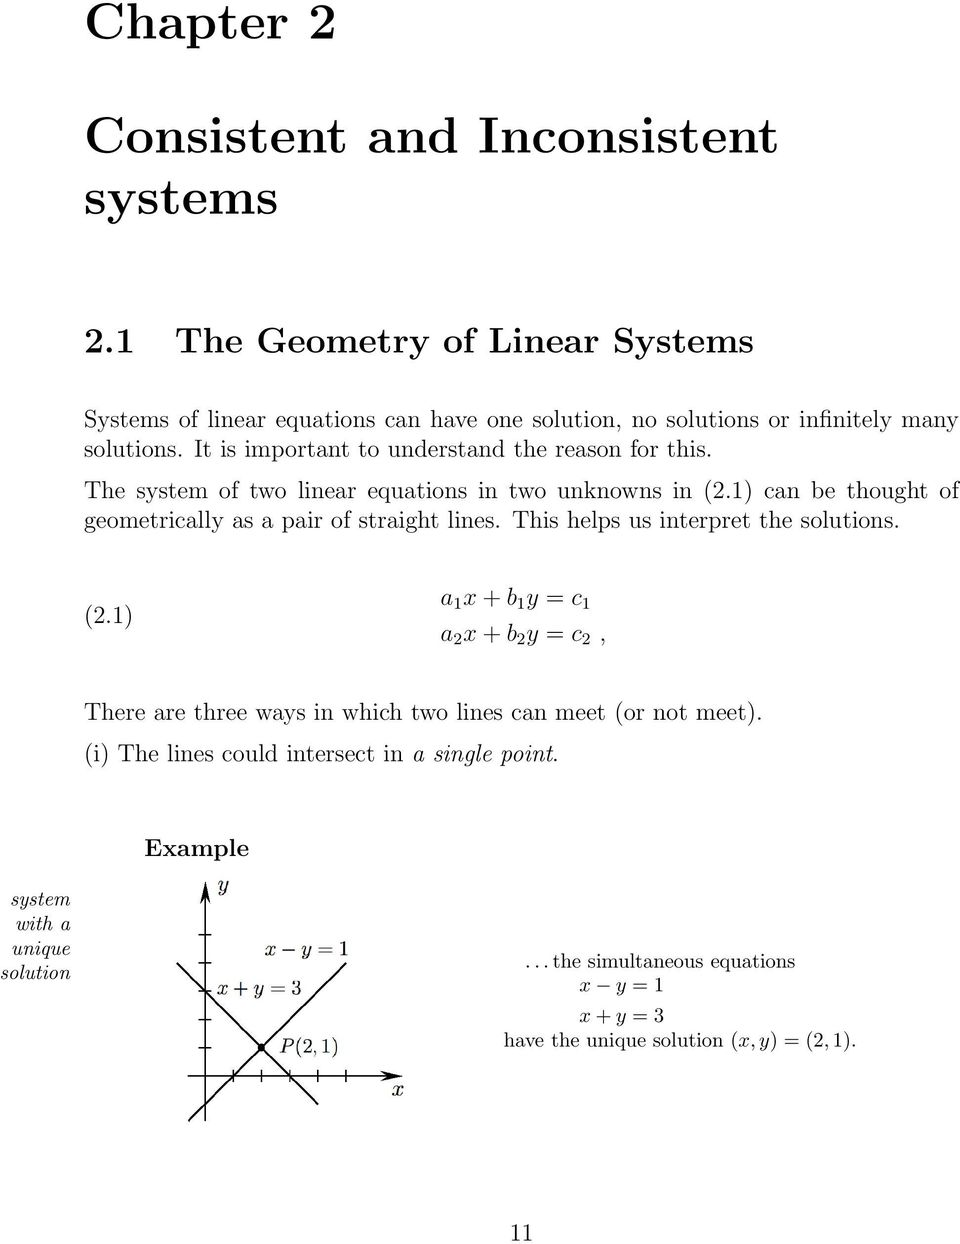 It is important to understand the reason for this. The system of two linear equations in two unknowns in (2.